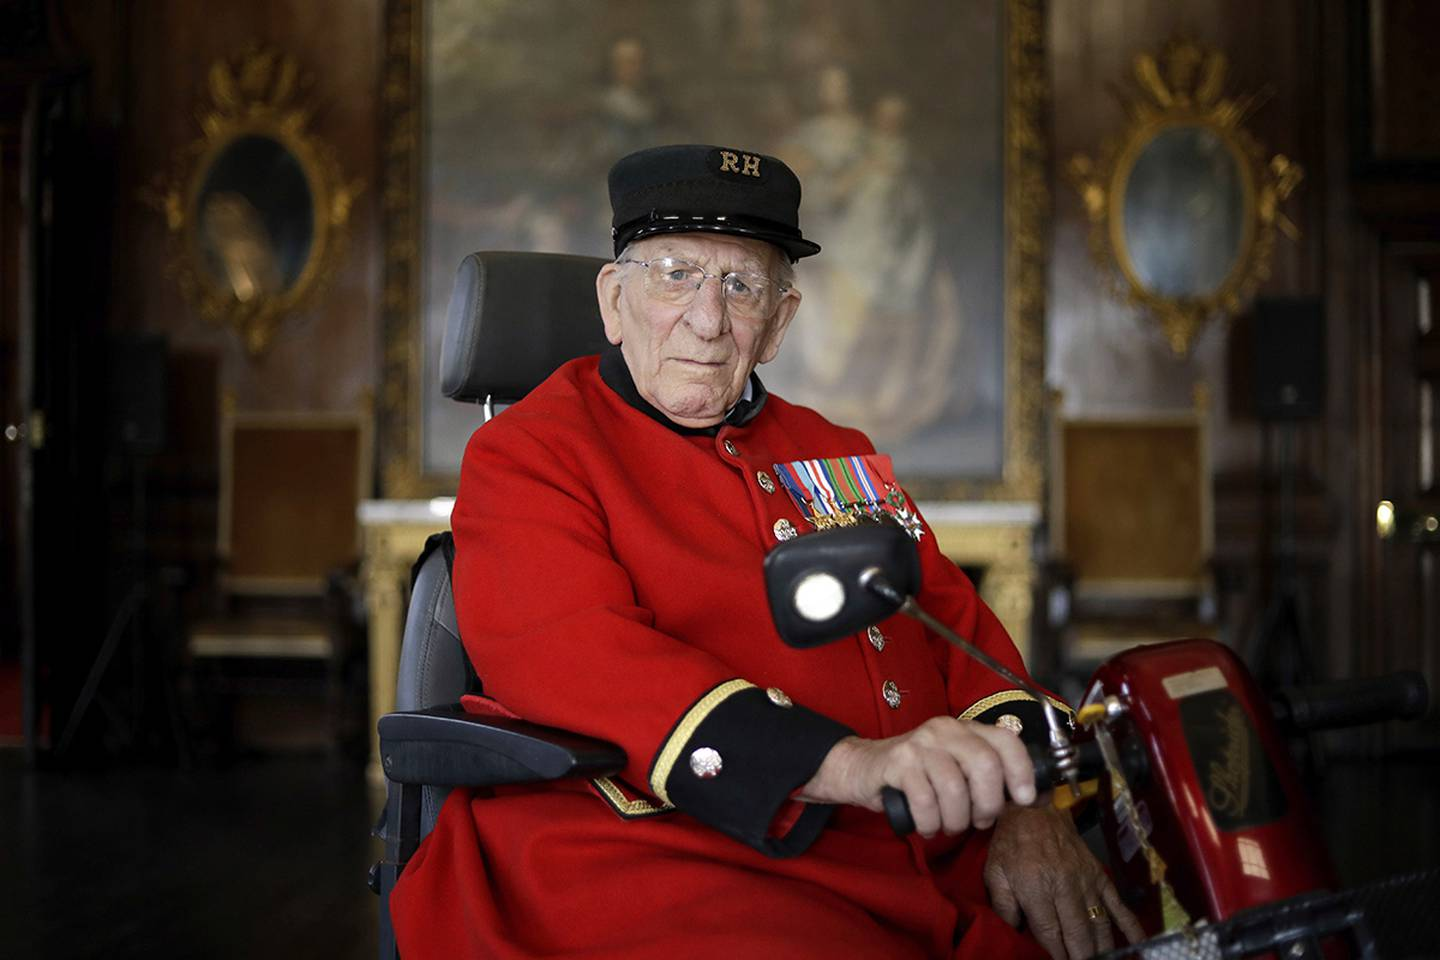 British D-Day veteran Frank Mouque poses for a portrait during a 75th anniversary D-Day event.